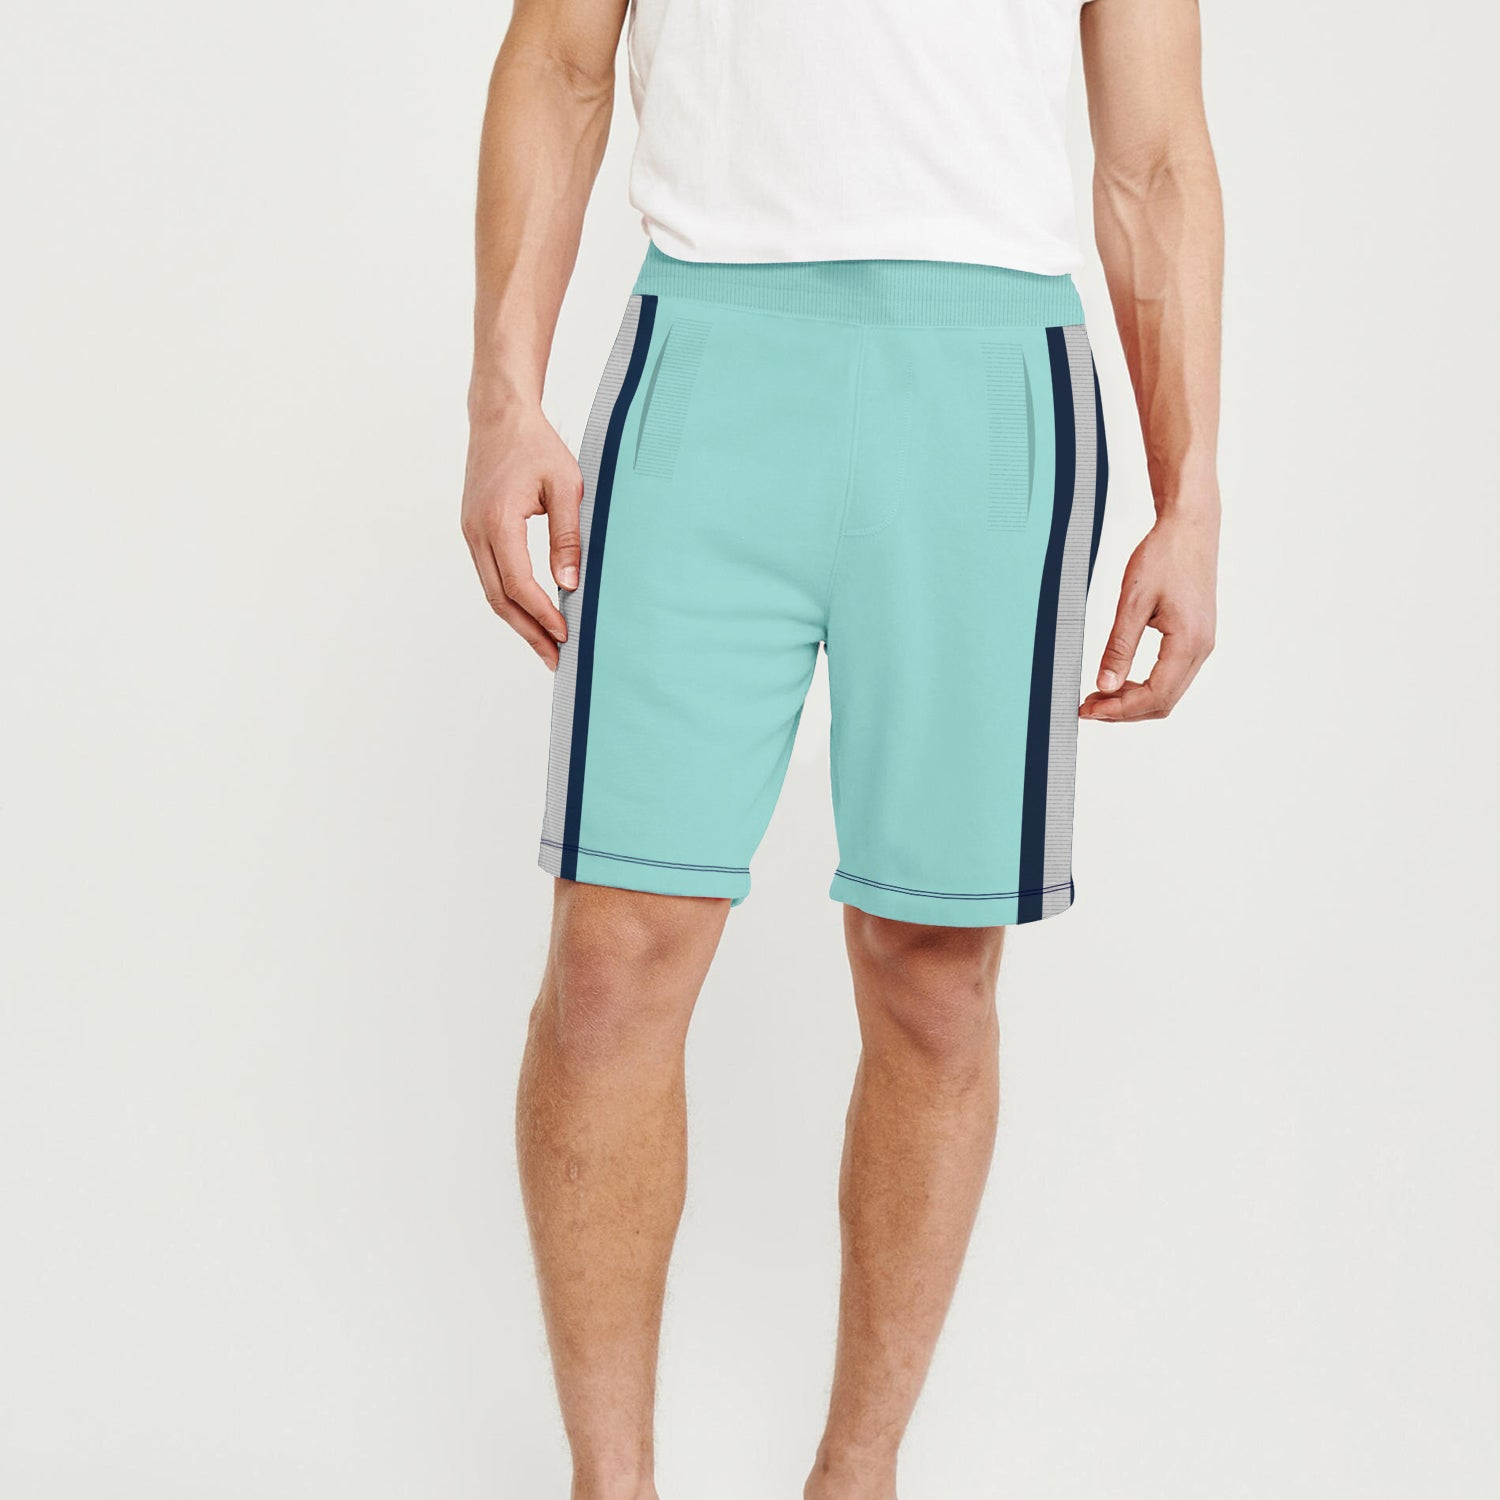 Next Terry Fleece Short For Men-Cyan Green with Stripe-BE9130